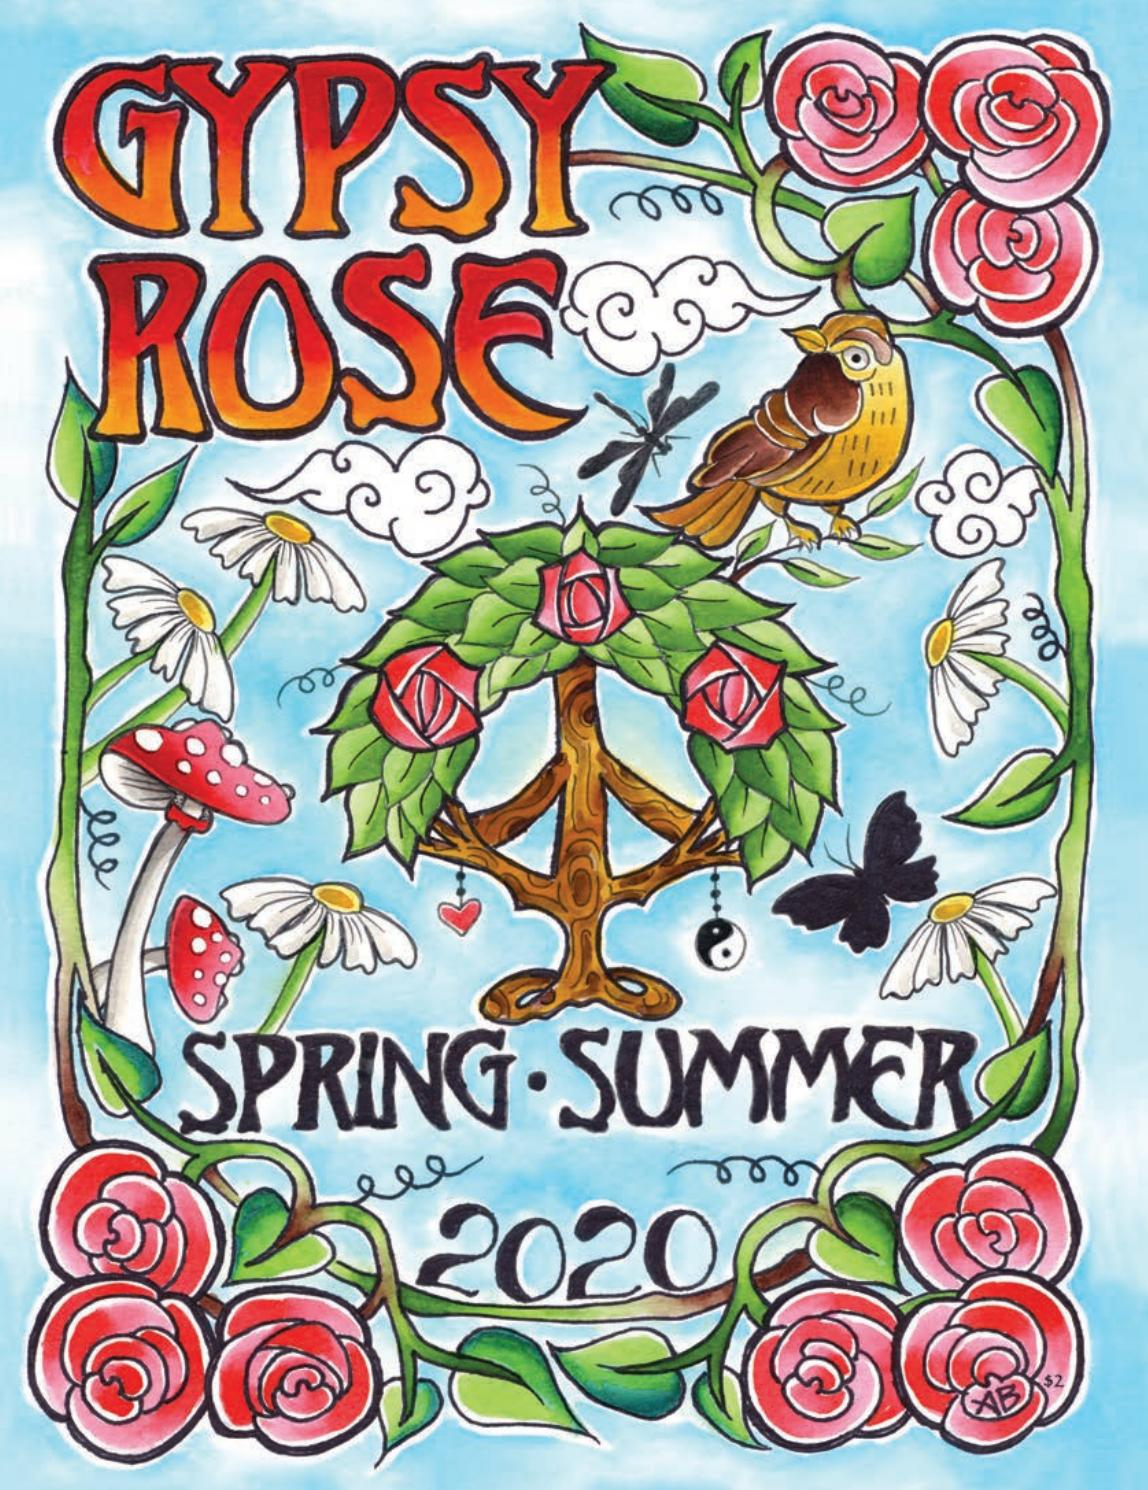 Gypsy Rose Spring Summer 2020 Cataloggypsy Rose Corp – Issuu With Best And Newest Blended Fabric The Road Rises Wall Panel With Topper Tapestries And Wall Hangings (View 15 of 20)